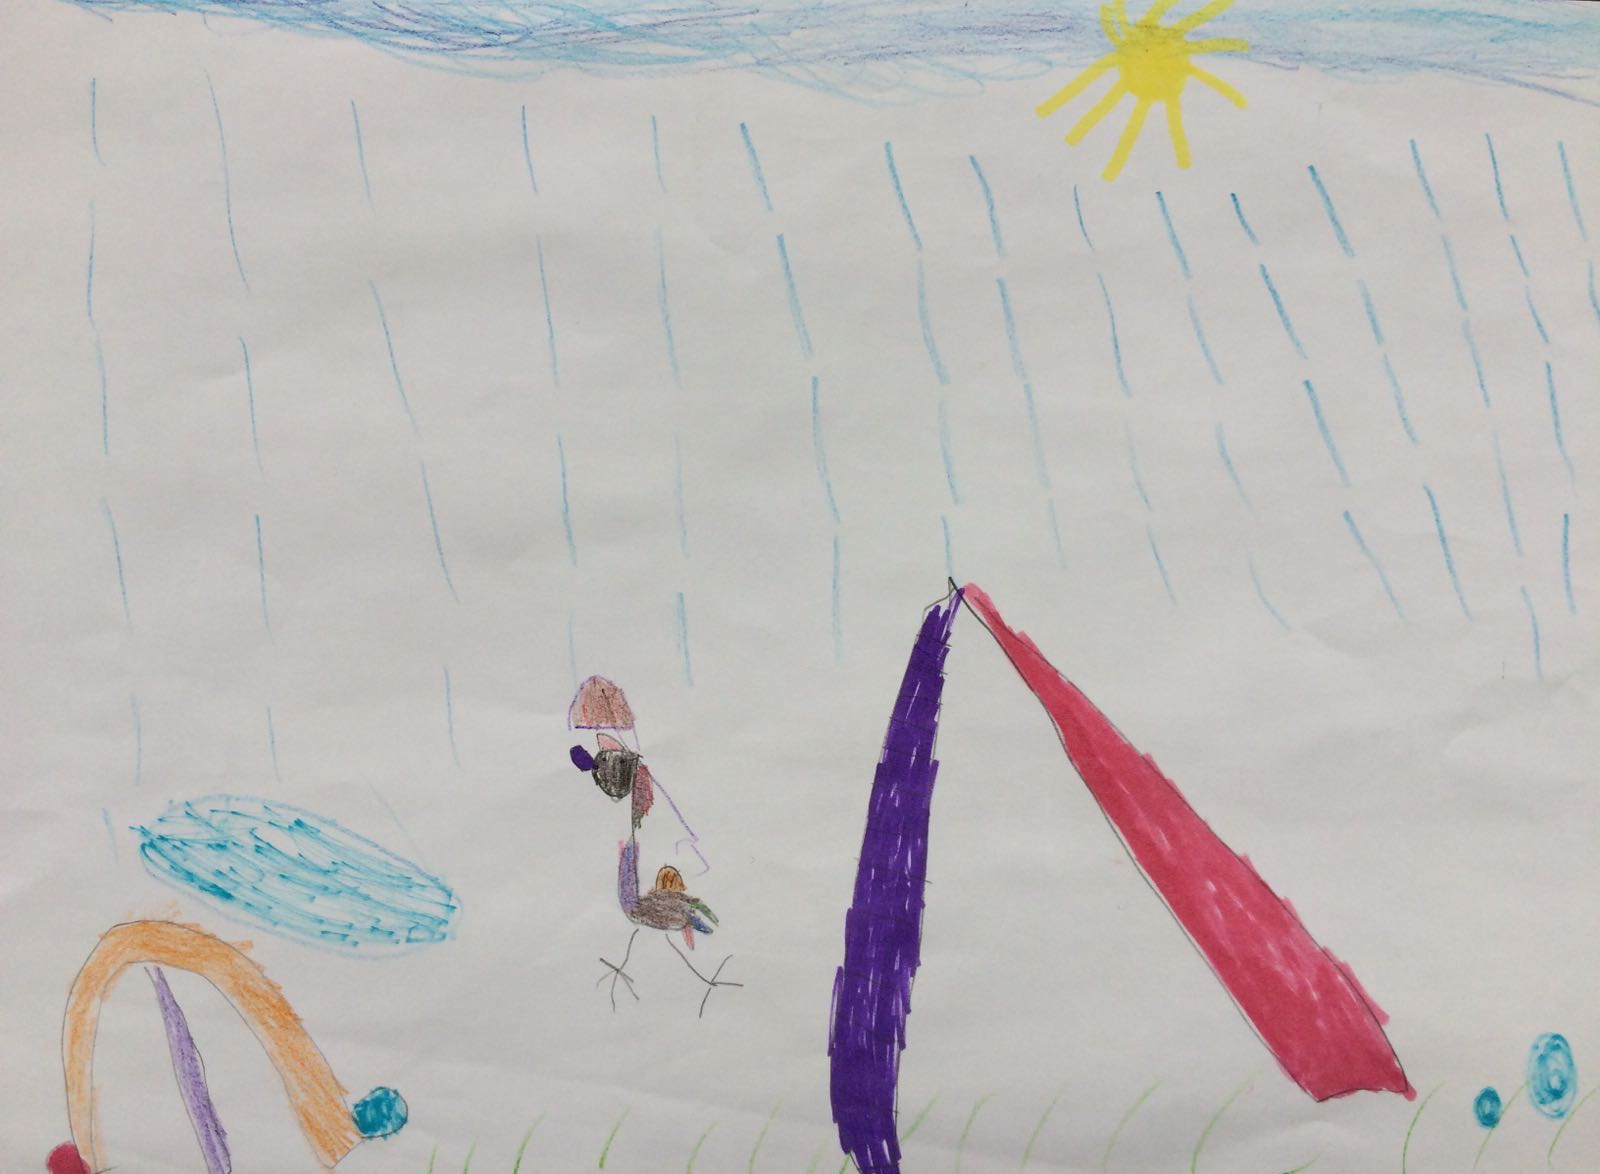 Parrot in the rain, by Lily